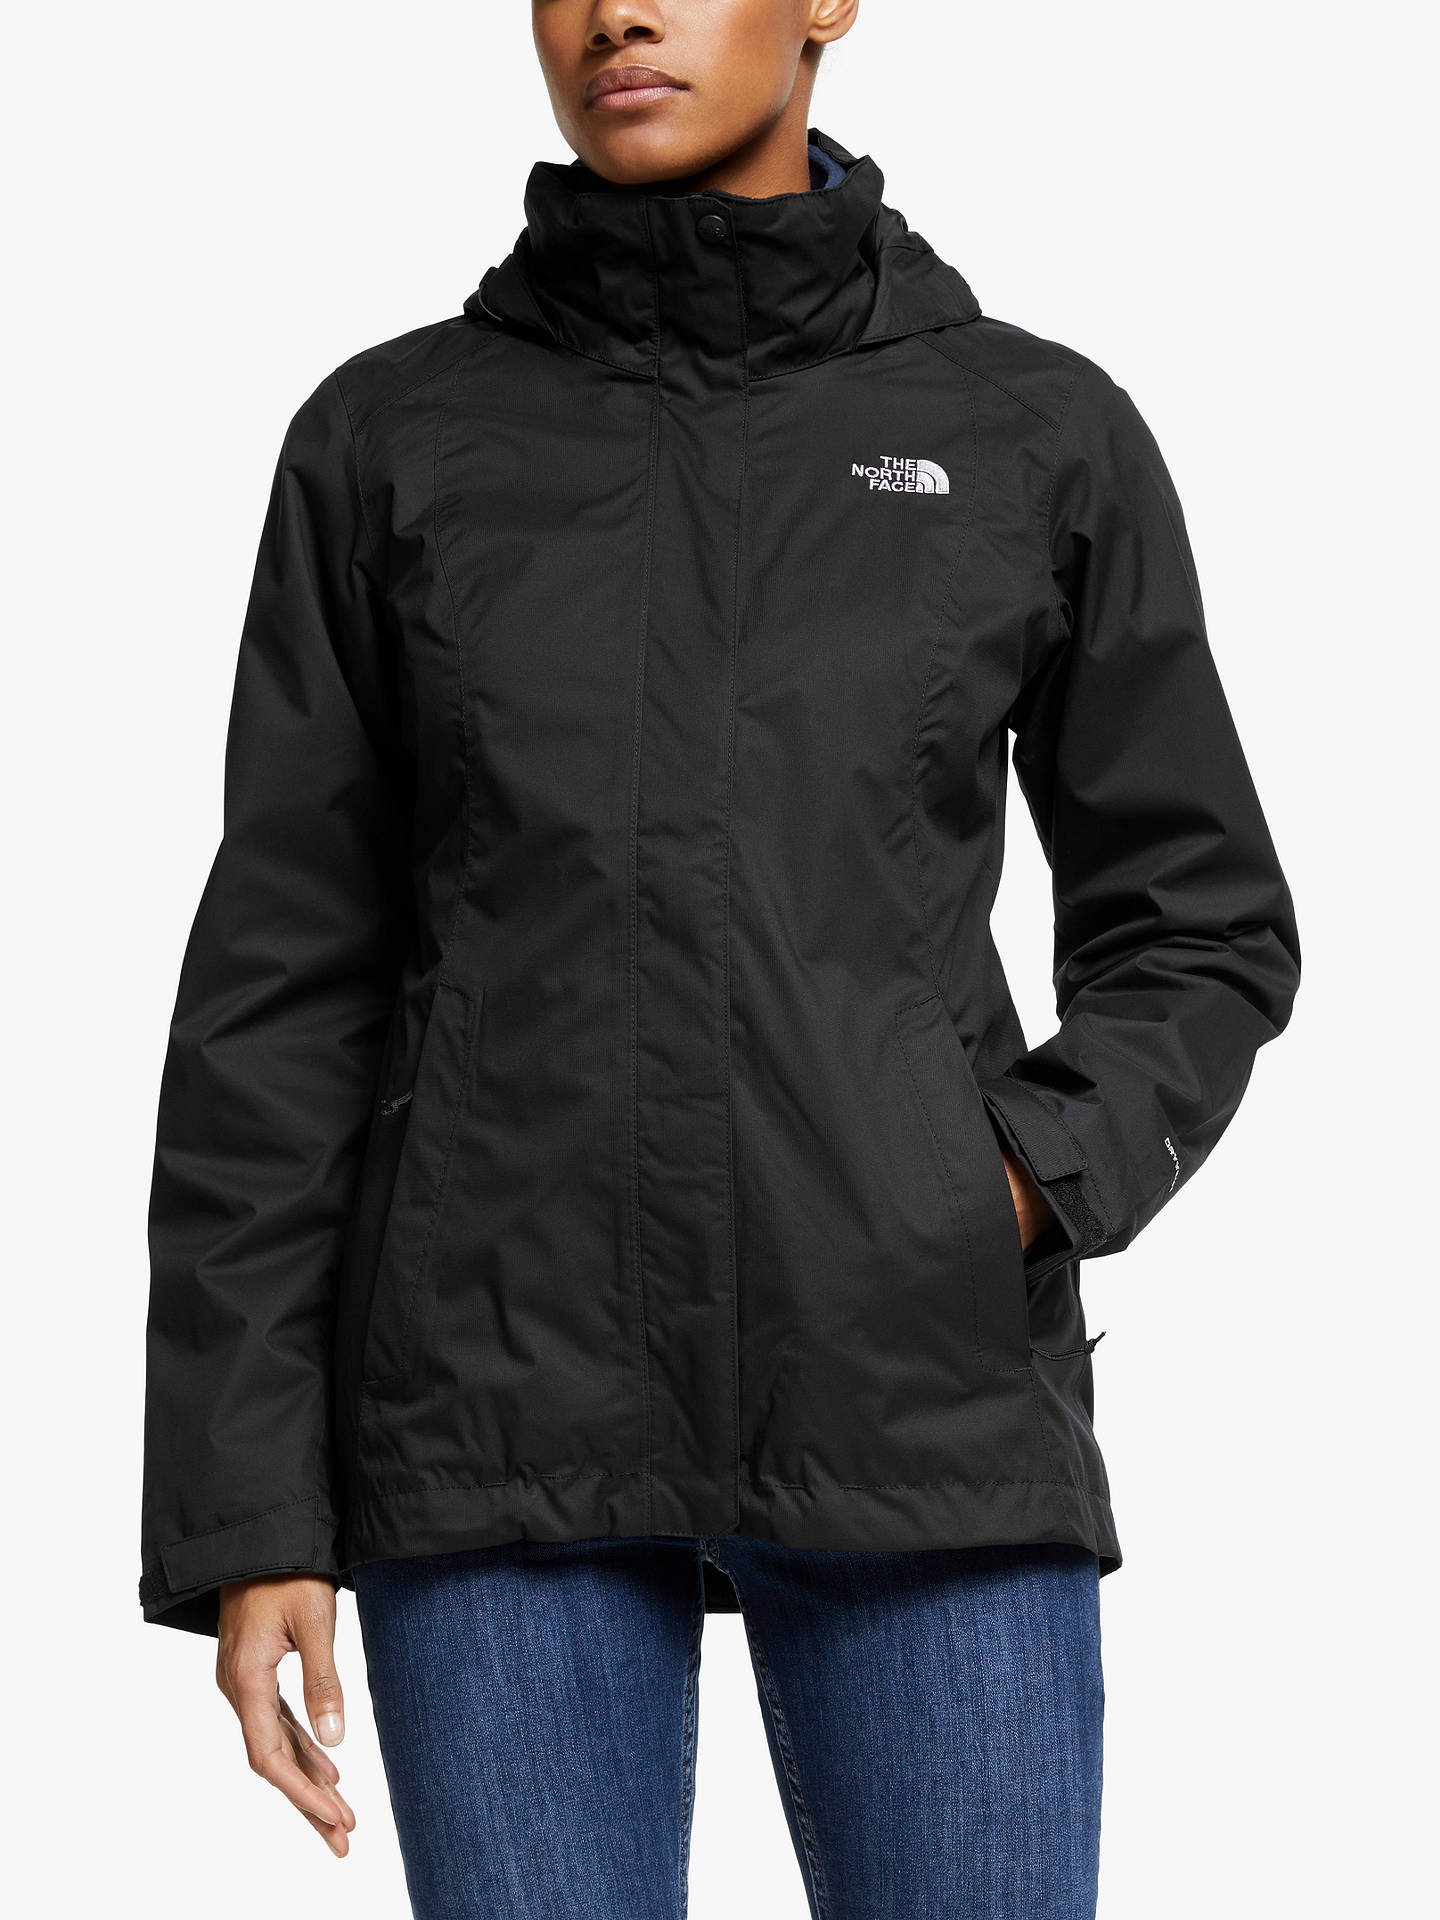 The North Face Evolve II Triclimate 3-in-1 Waterproof Women s Jacket ... 4e24977c5efd